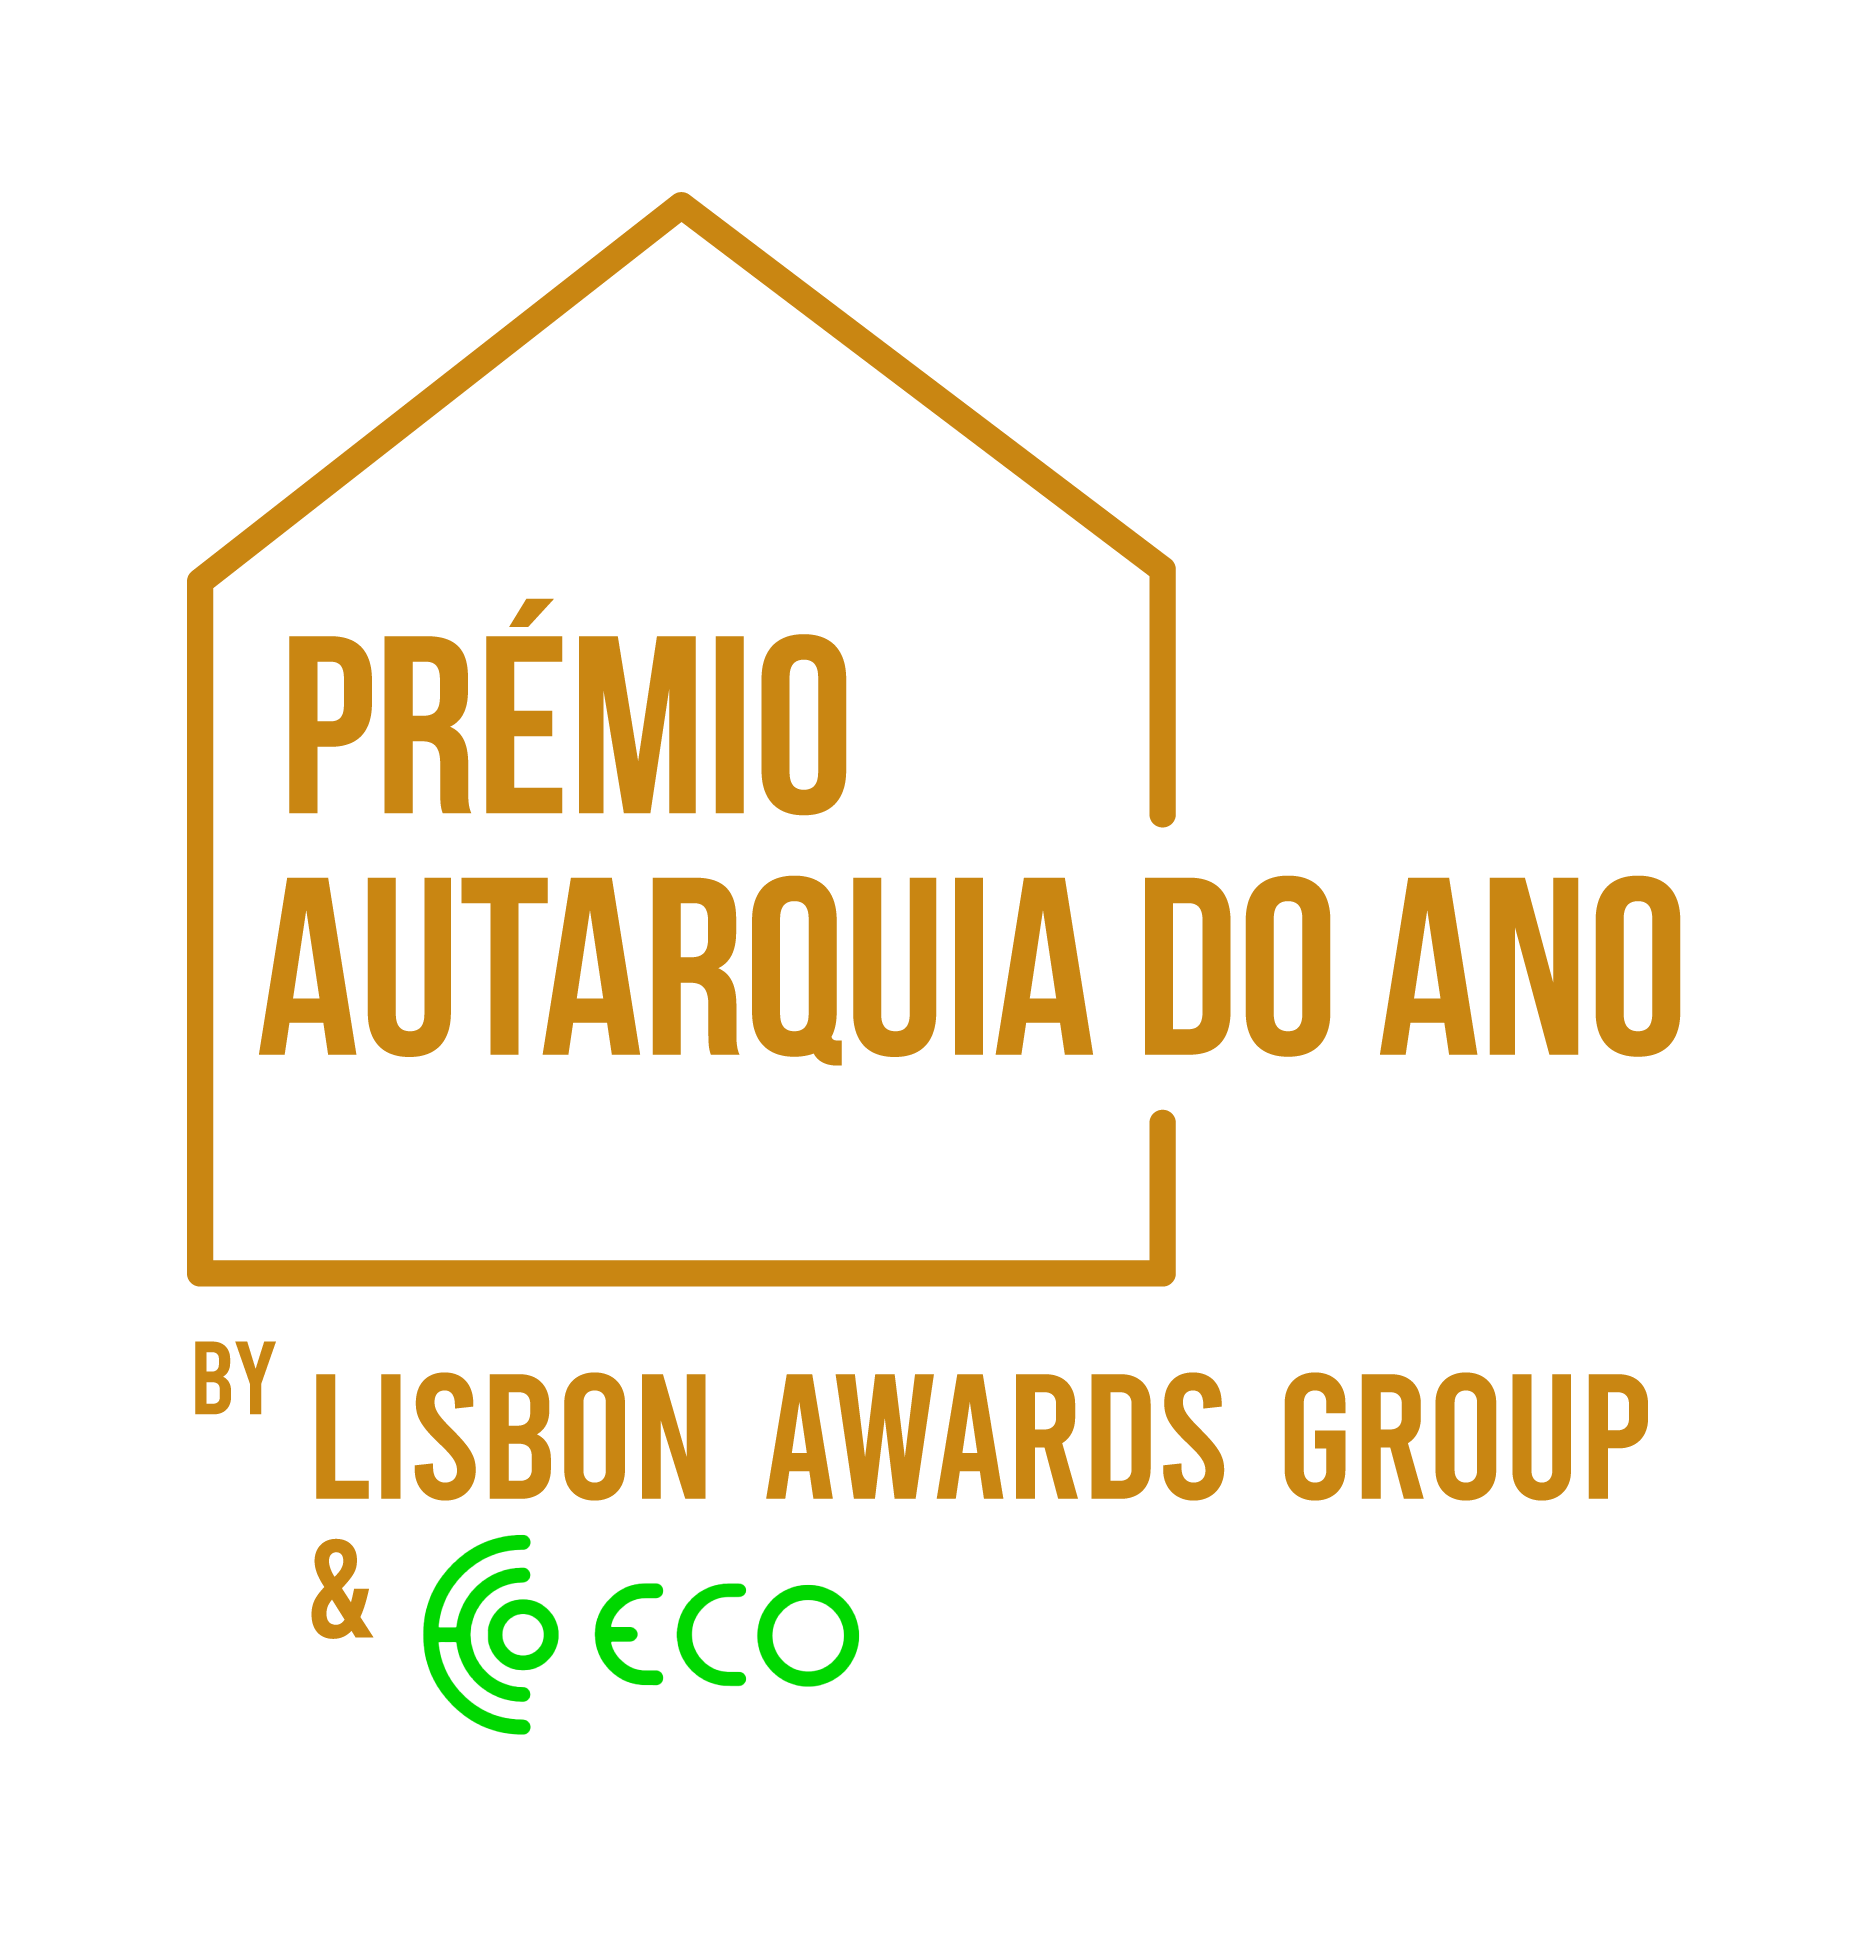 Prémio Autarquia do Ano by Lisbon Awards Group